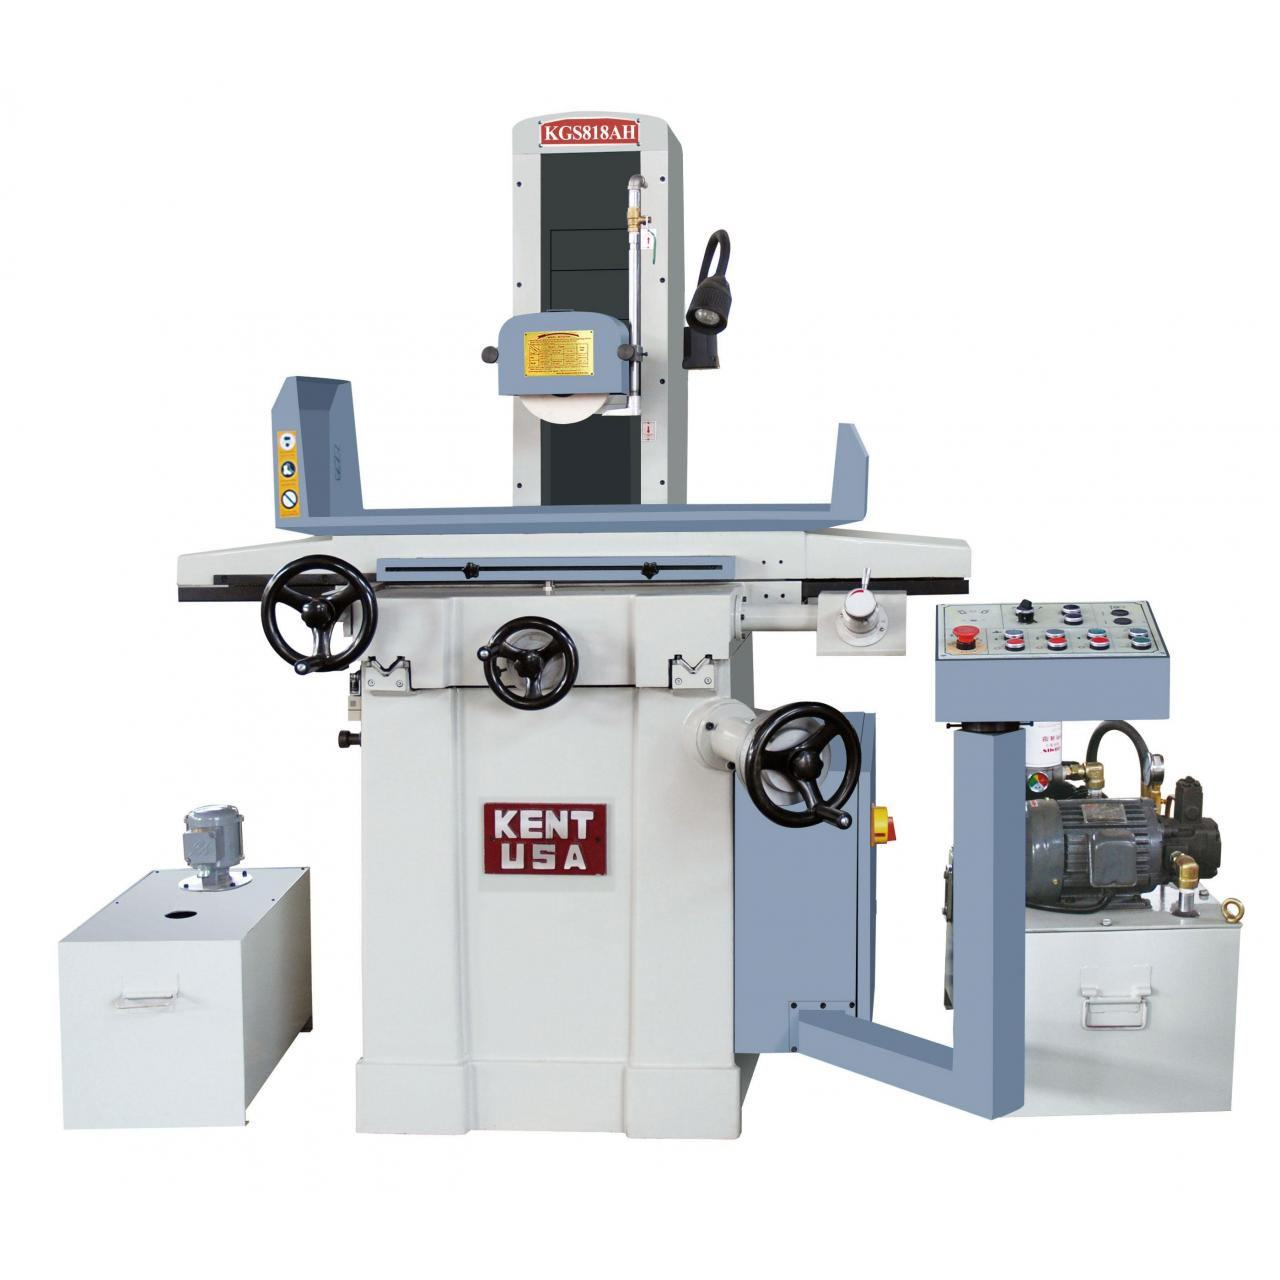 Buy cheap Kent KGS-818AH 2 Axis Automatic Surface Grinder from wholesalers